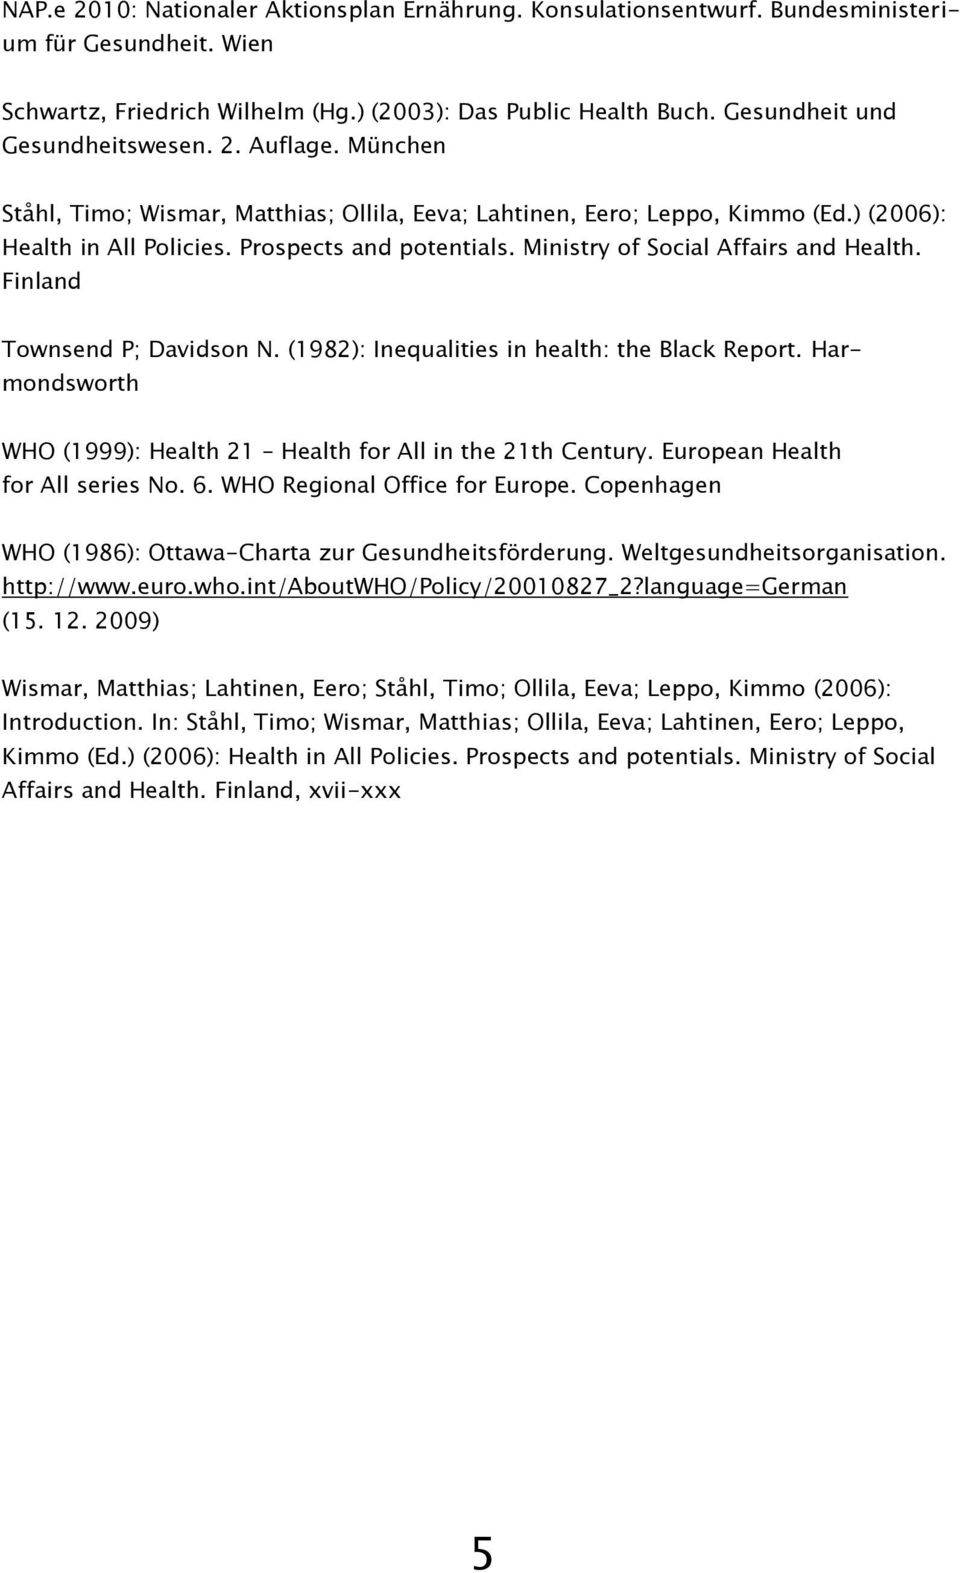 Ministry of Social Affairs and Health. Finland Townsend P; Davidson N. (1982): Inequalities in health: the Black Report. Harmondsworth WHO (1999): Health 21 Health for All in the 21th Century.